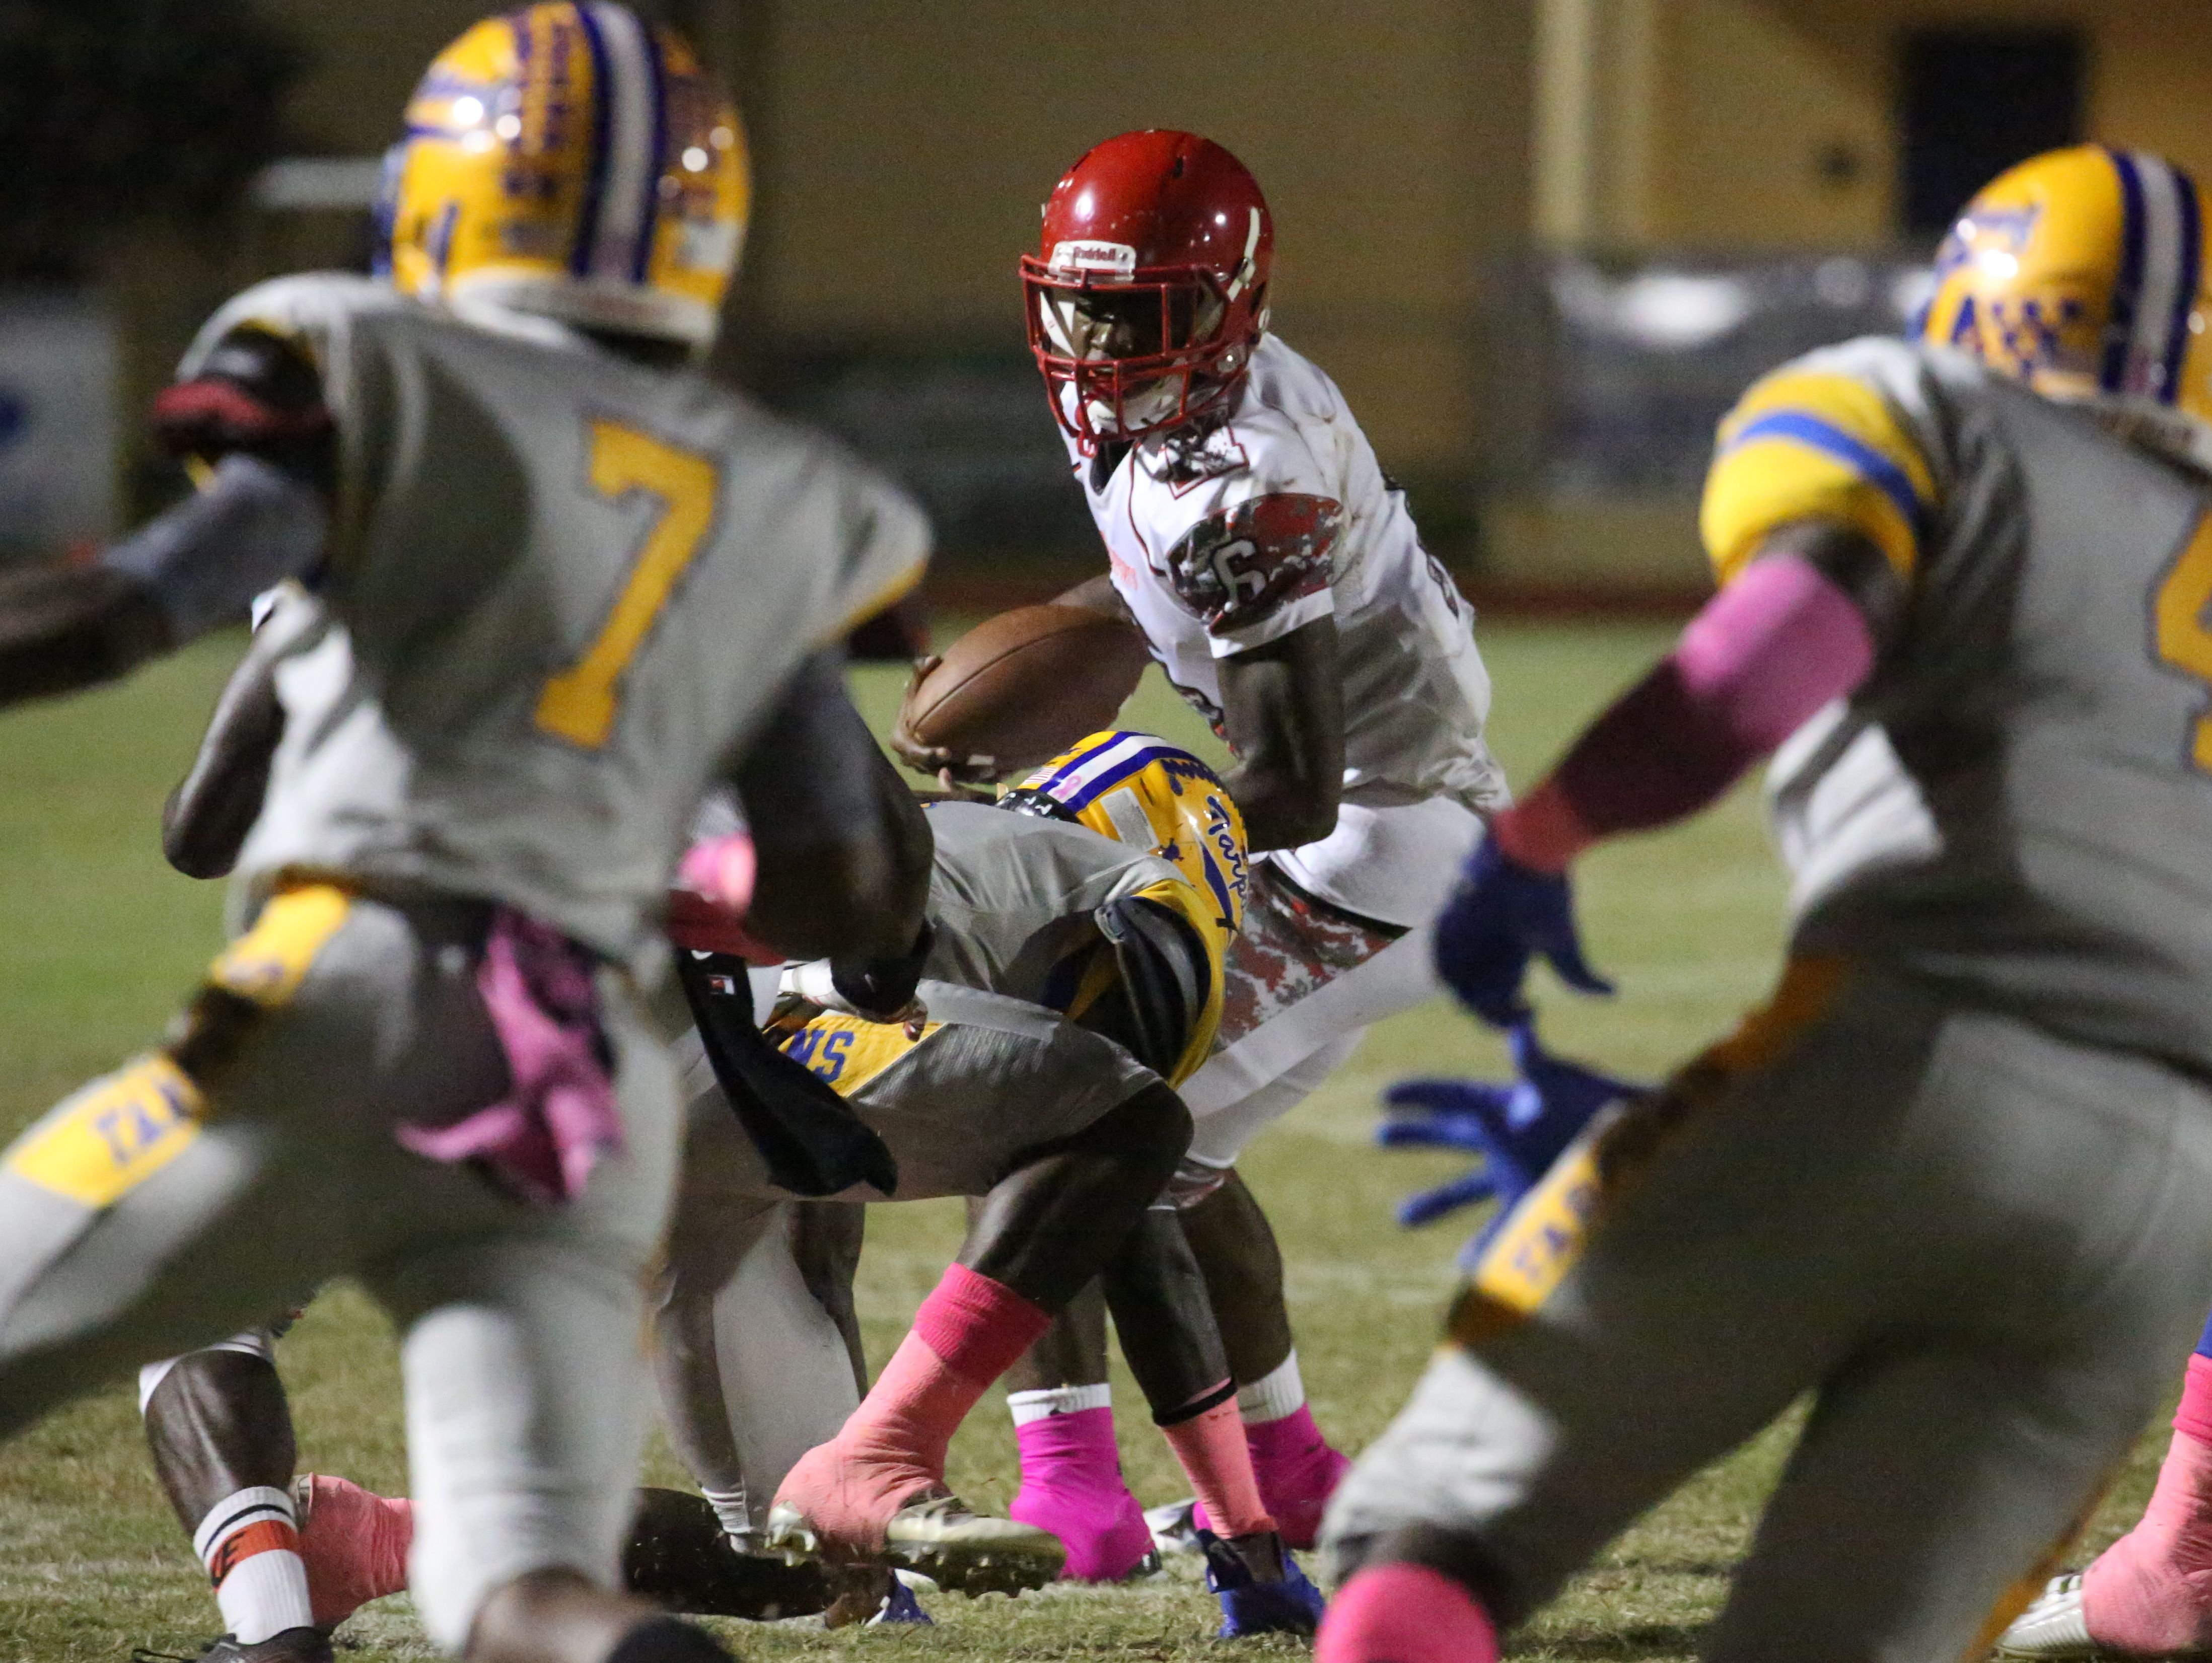 North Fort Myers' Zaquandre White looks for an opening as he gains yards as North Fort Myers played at Charlotte Friday night.